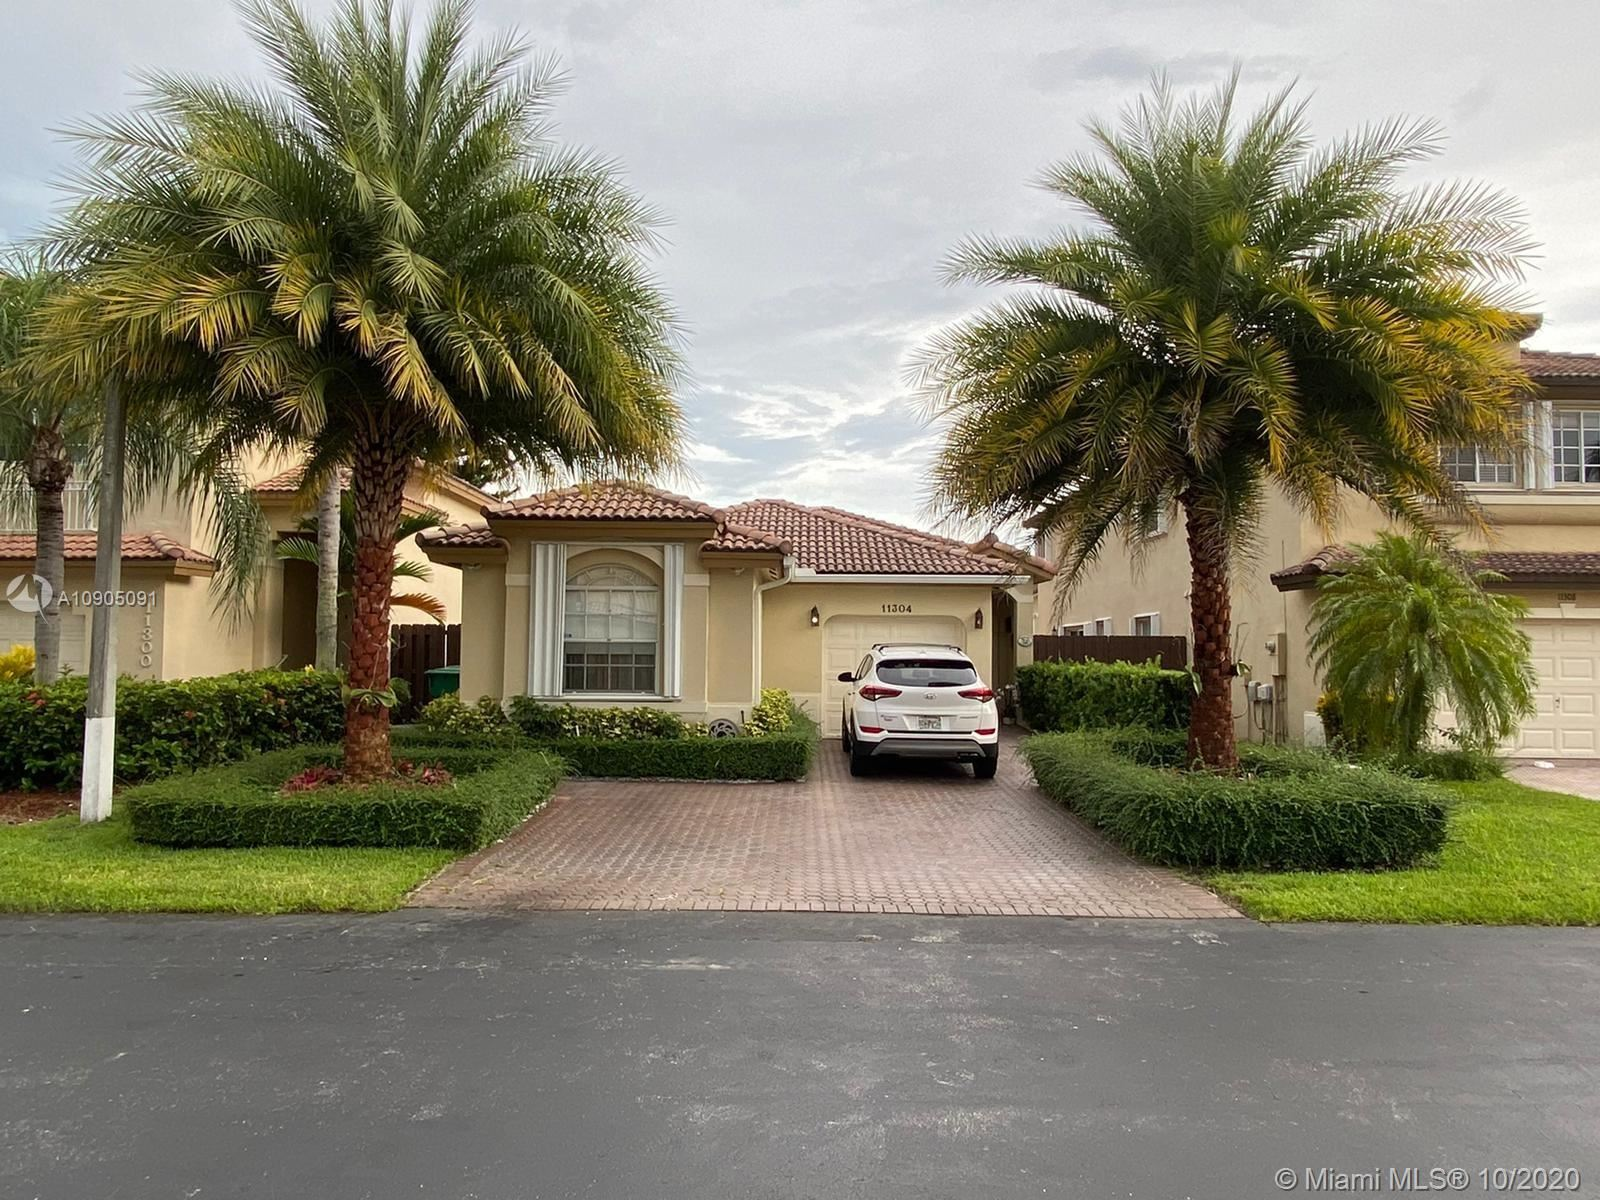 11304 NW 51st Ter, Doral, FL 33178 - #: A10905091